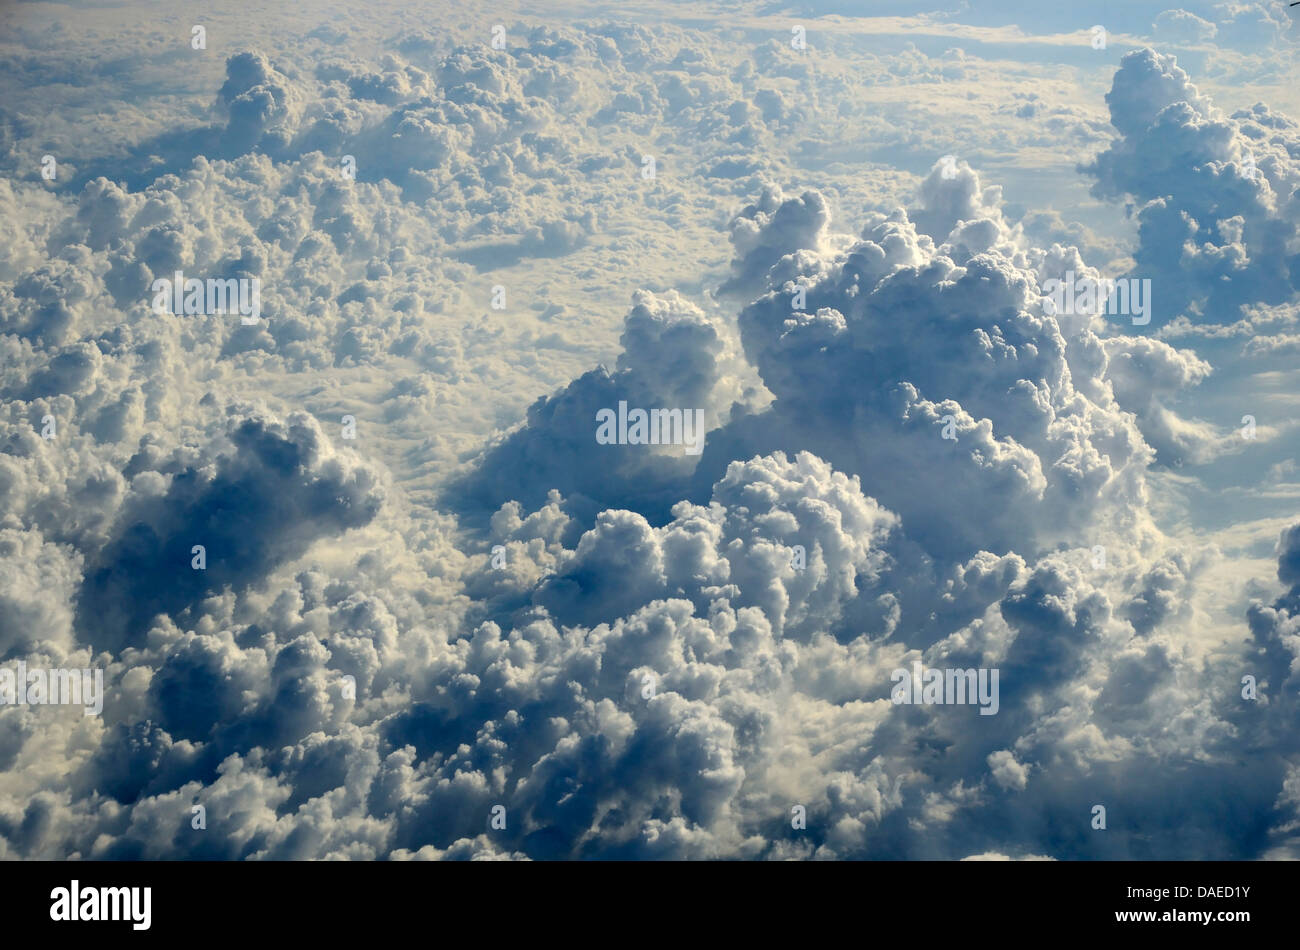 cloud cover, Italy - Stock Image